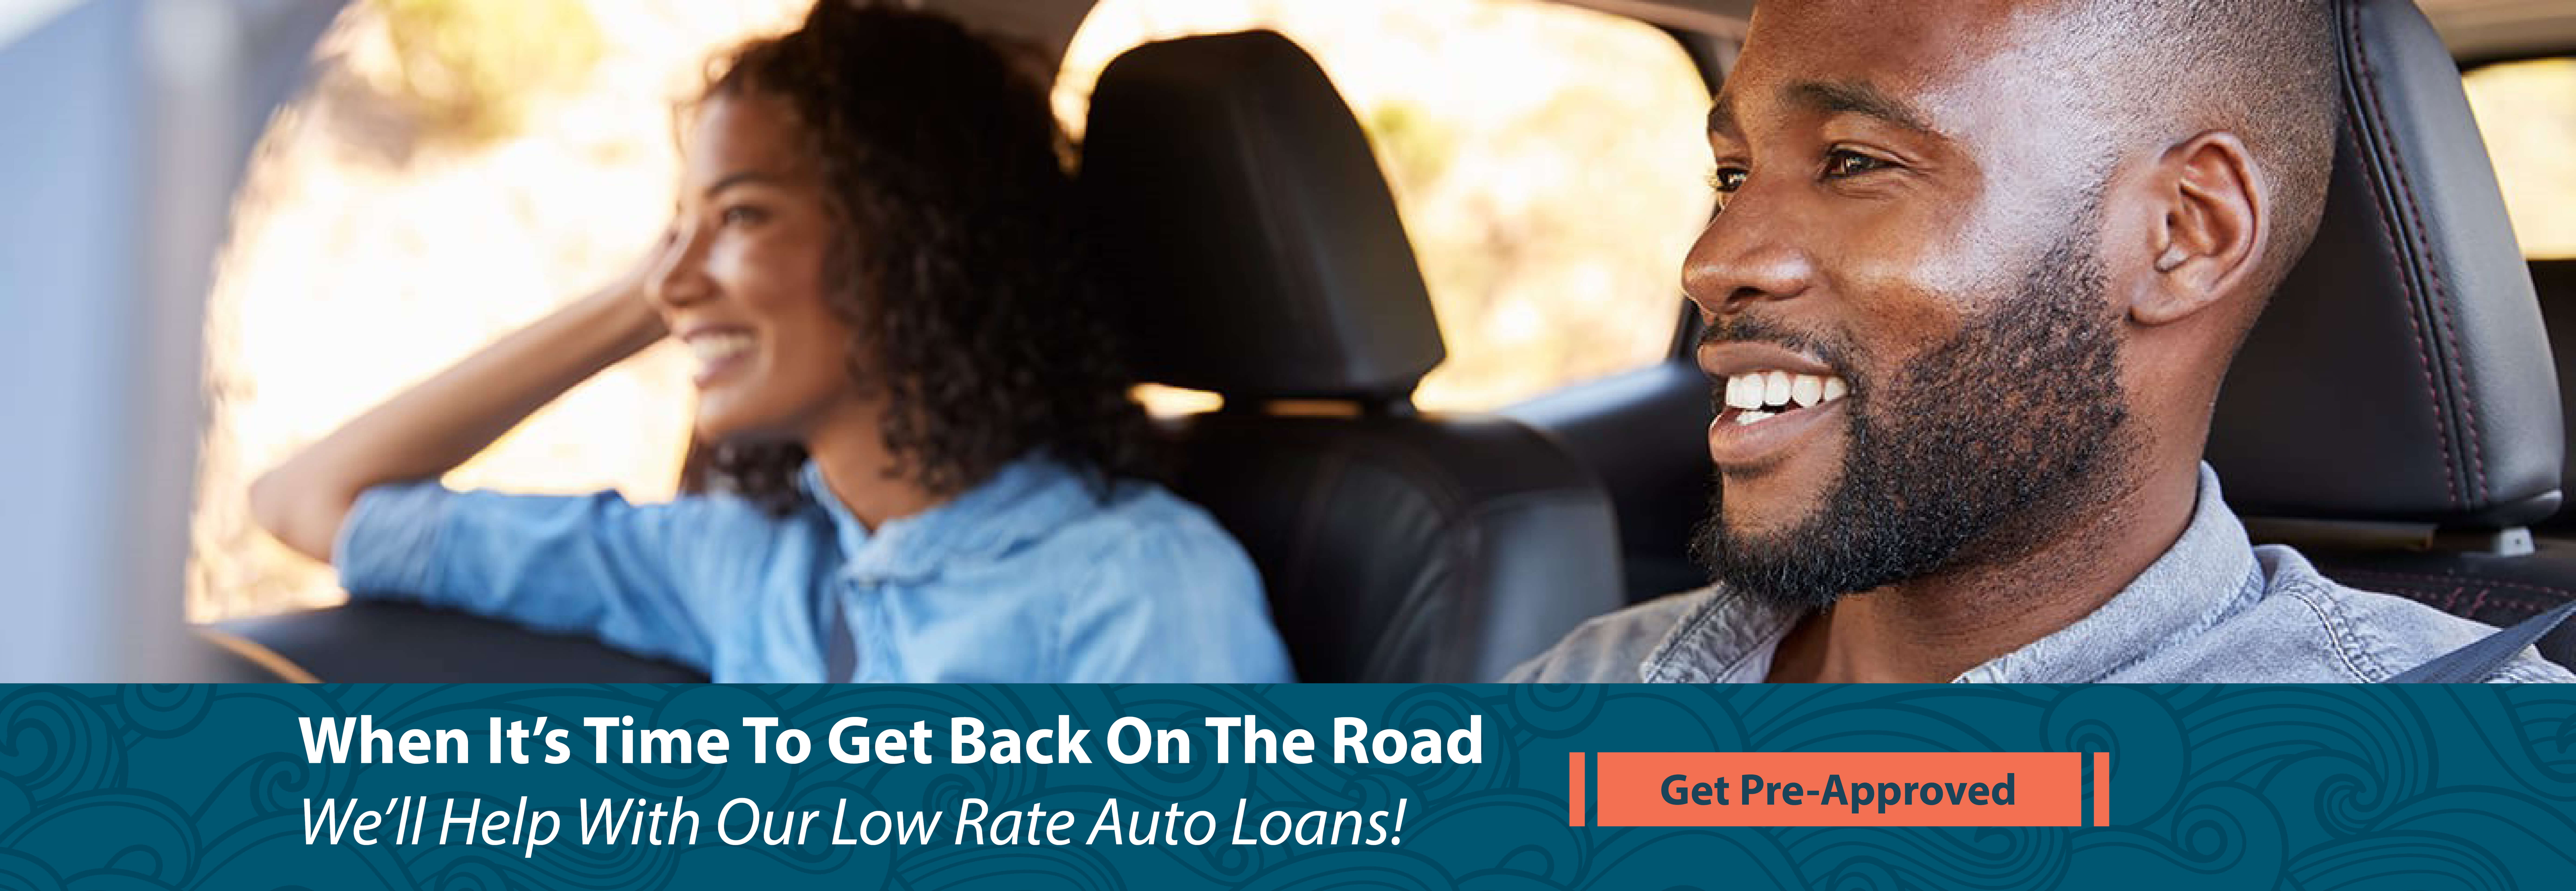 Get Back on the Road with these Low Rates